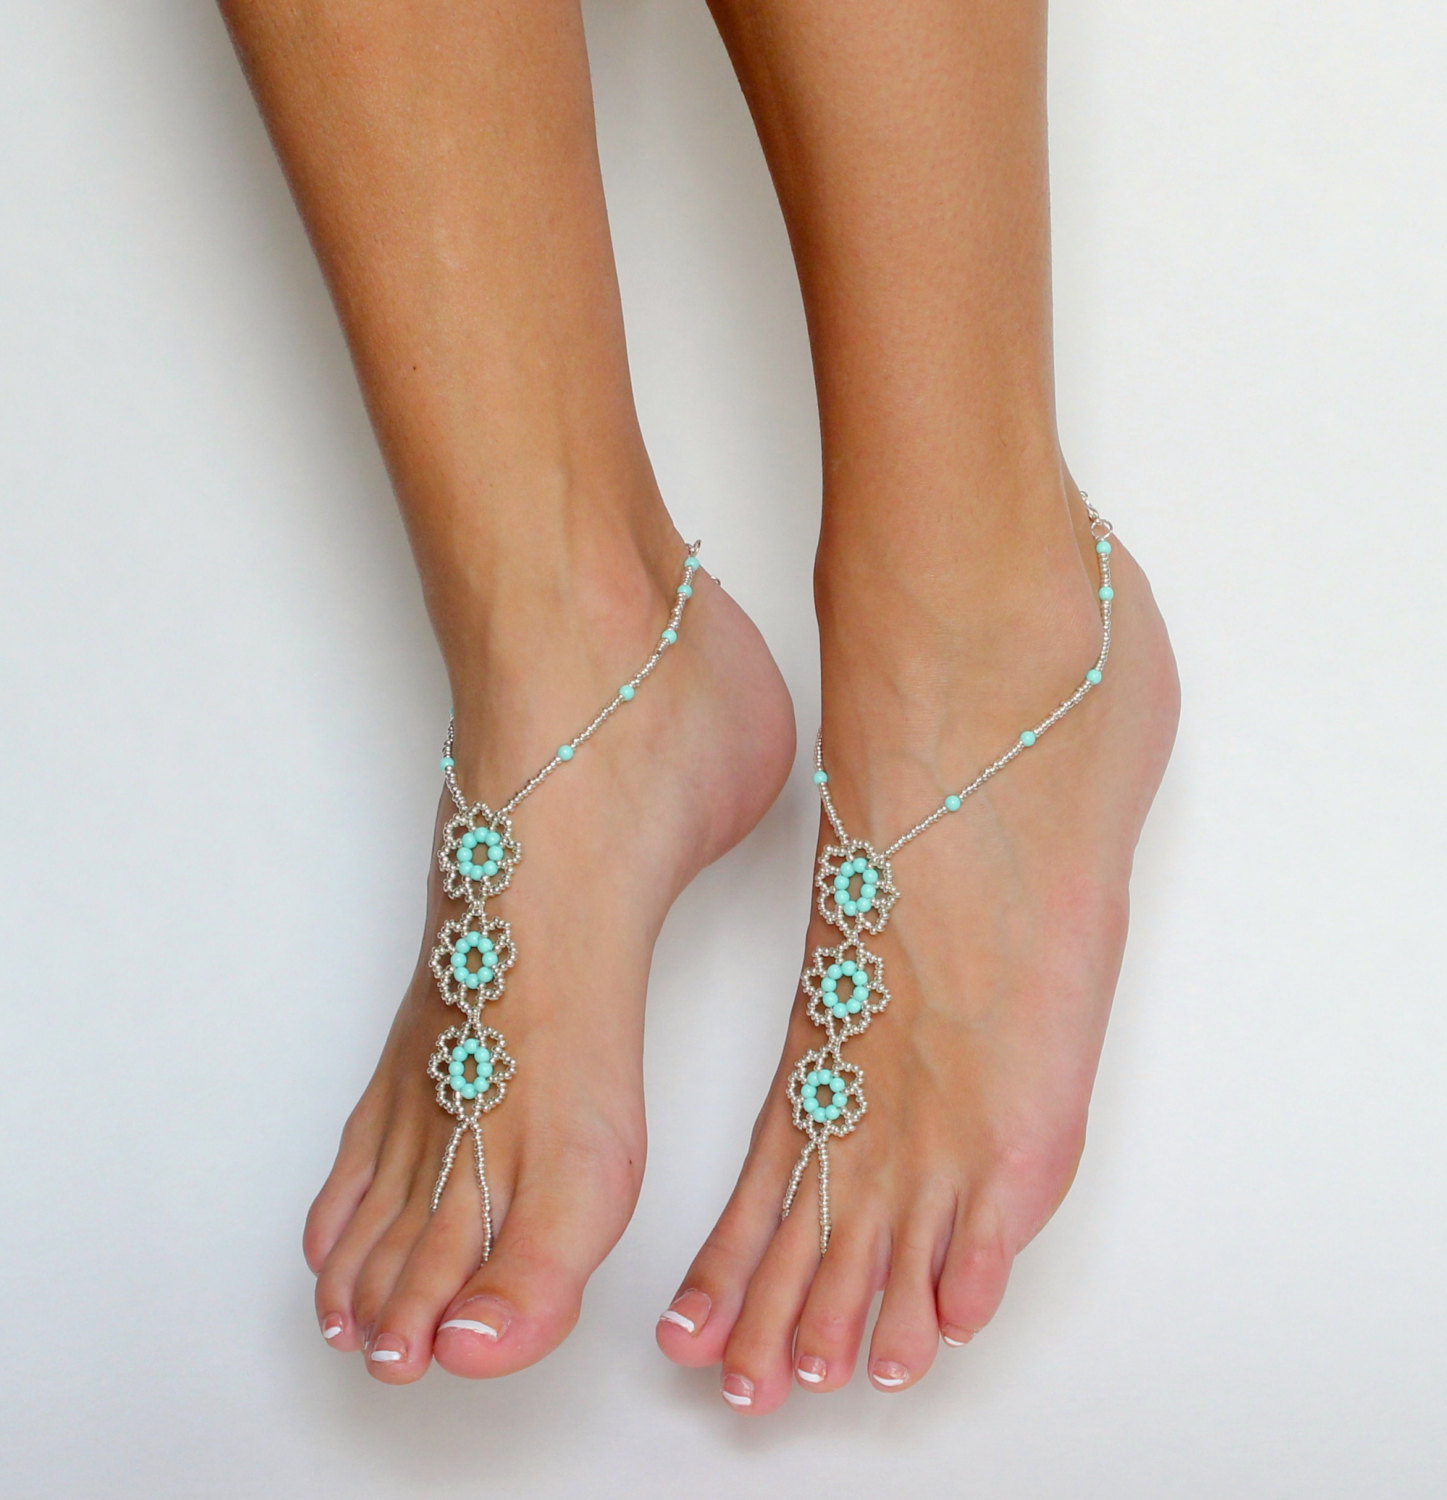 beach new baresandals sandals swarovski athea to foot jewelry barefoot on etsy anklet pin wedding